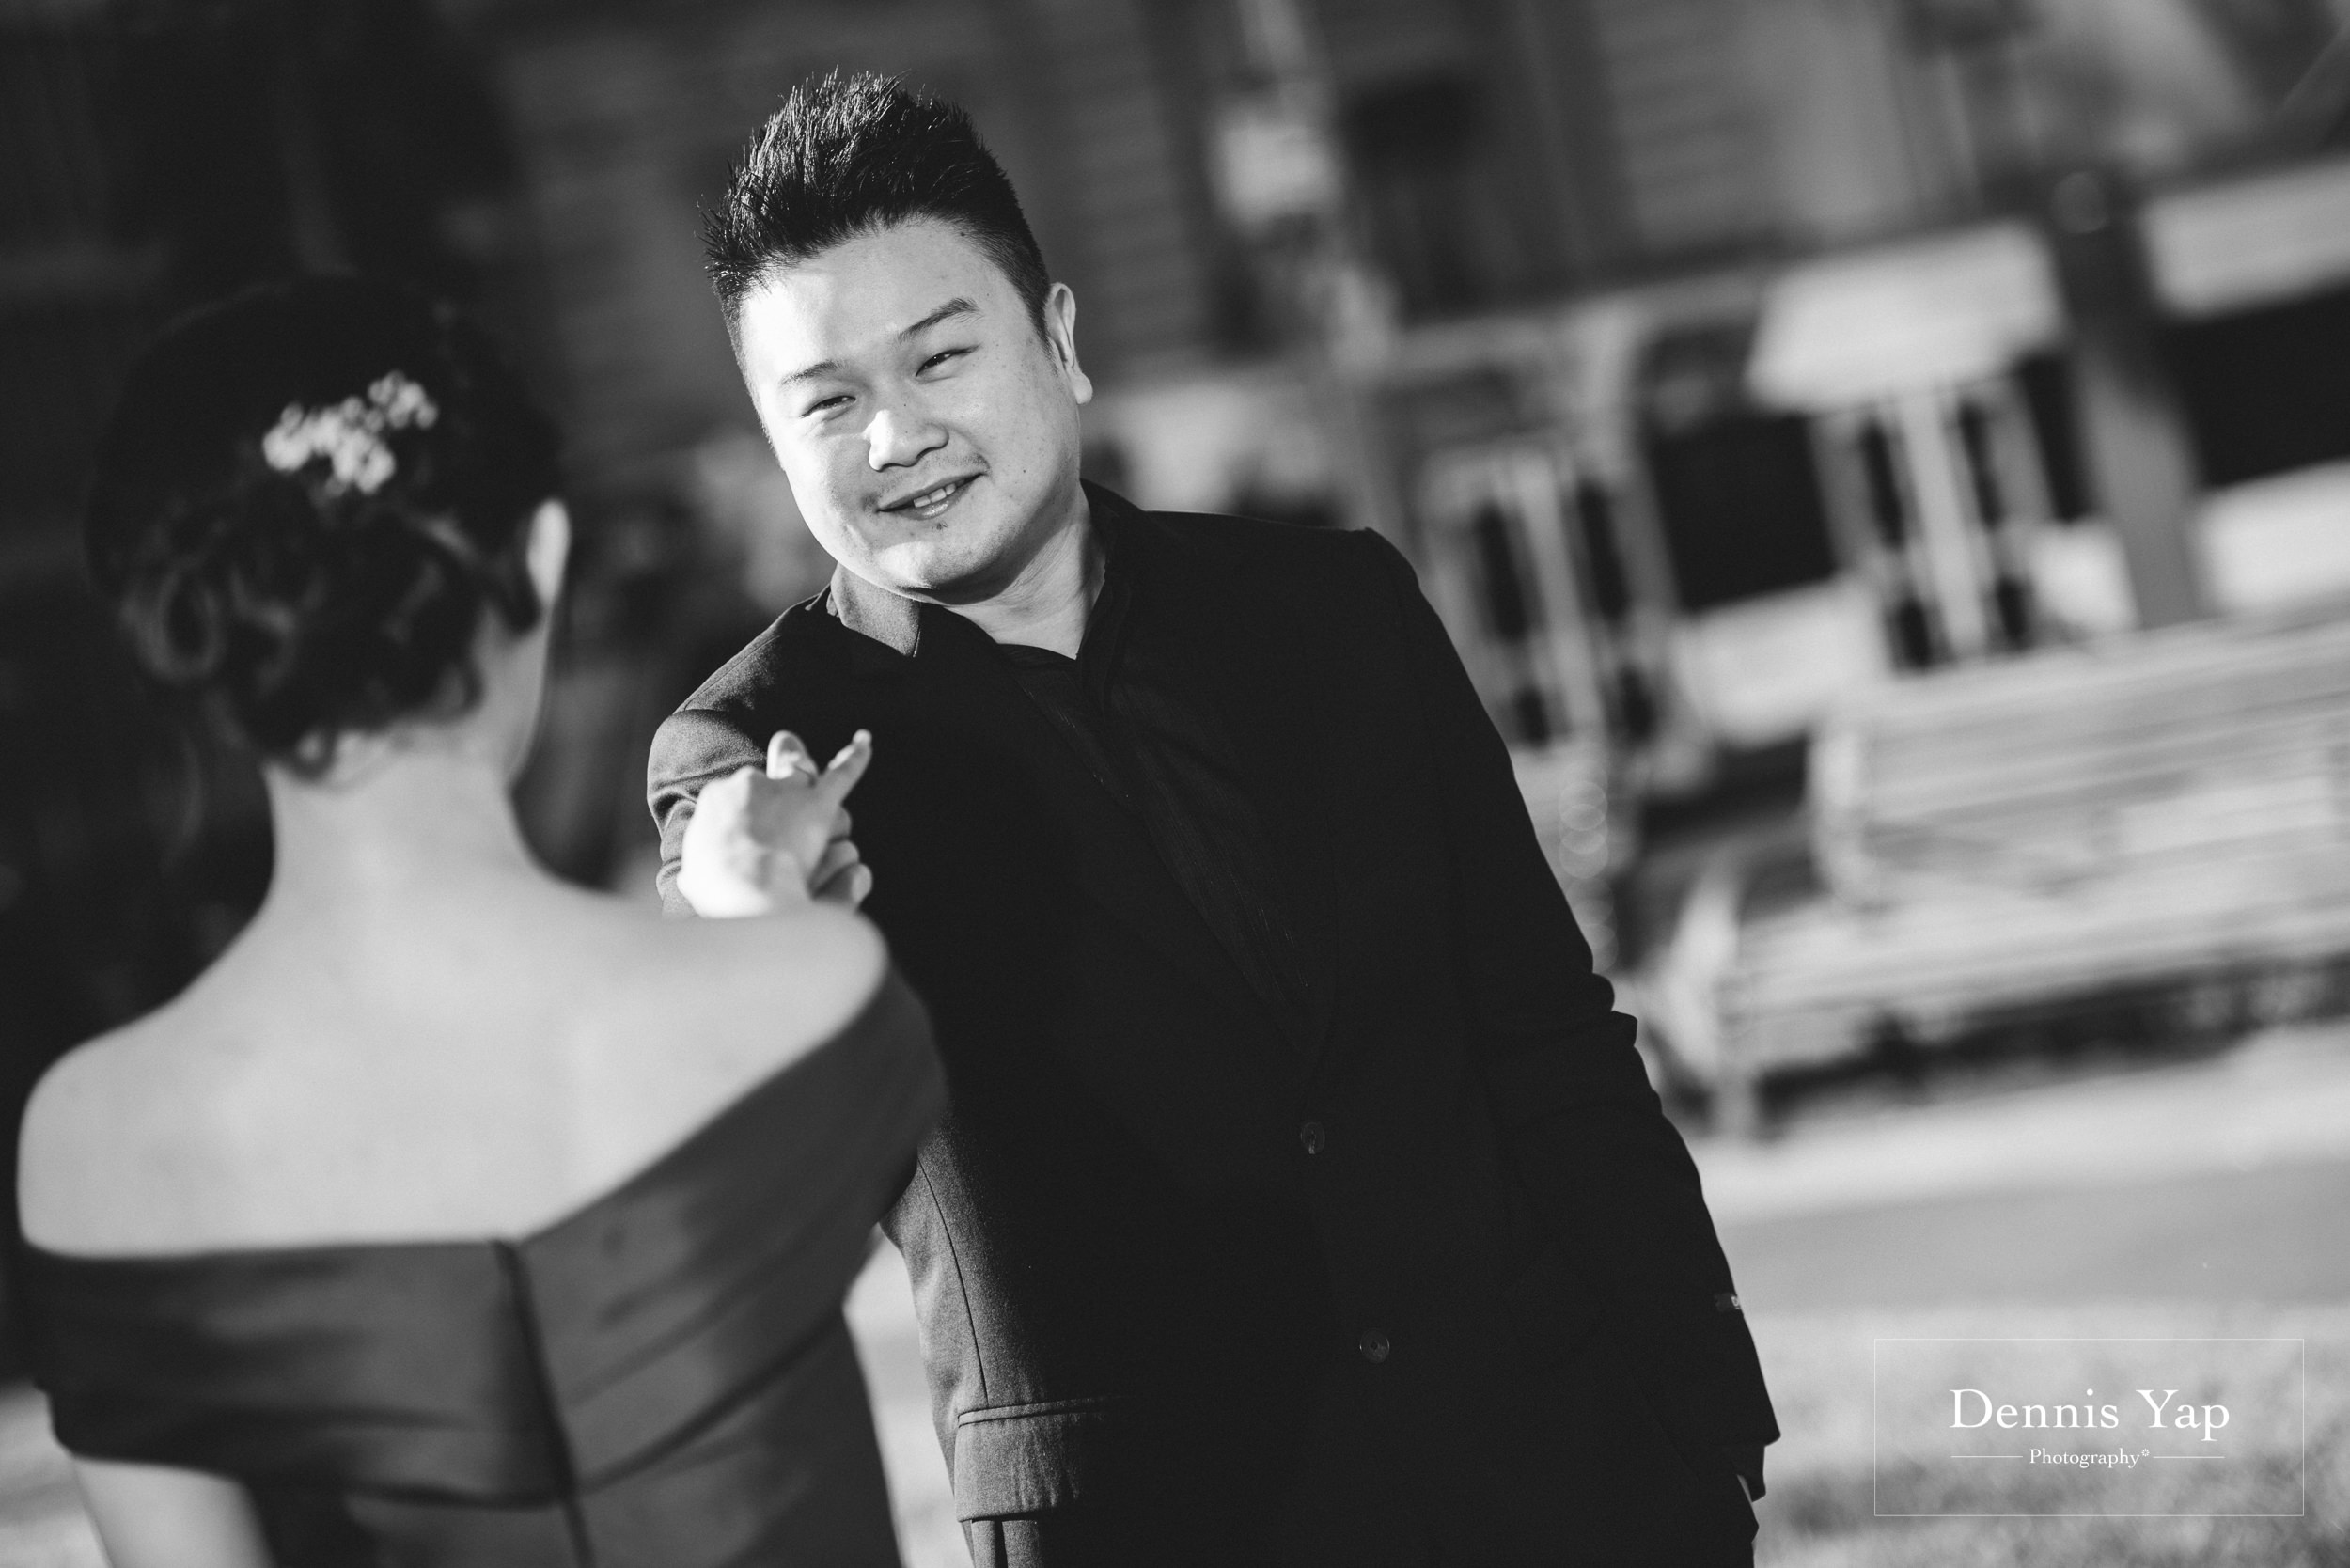 johnson joanne prewedding melbourne dennis yap photography fine art portrait paris dennis yap photography-5.jpg